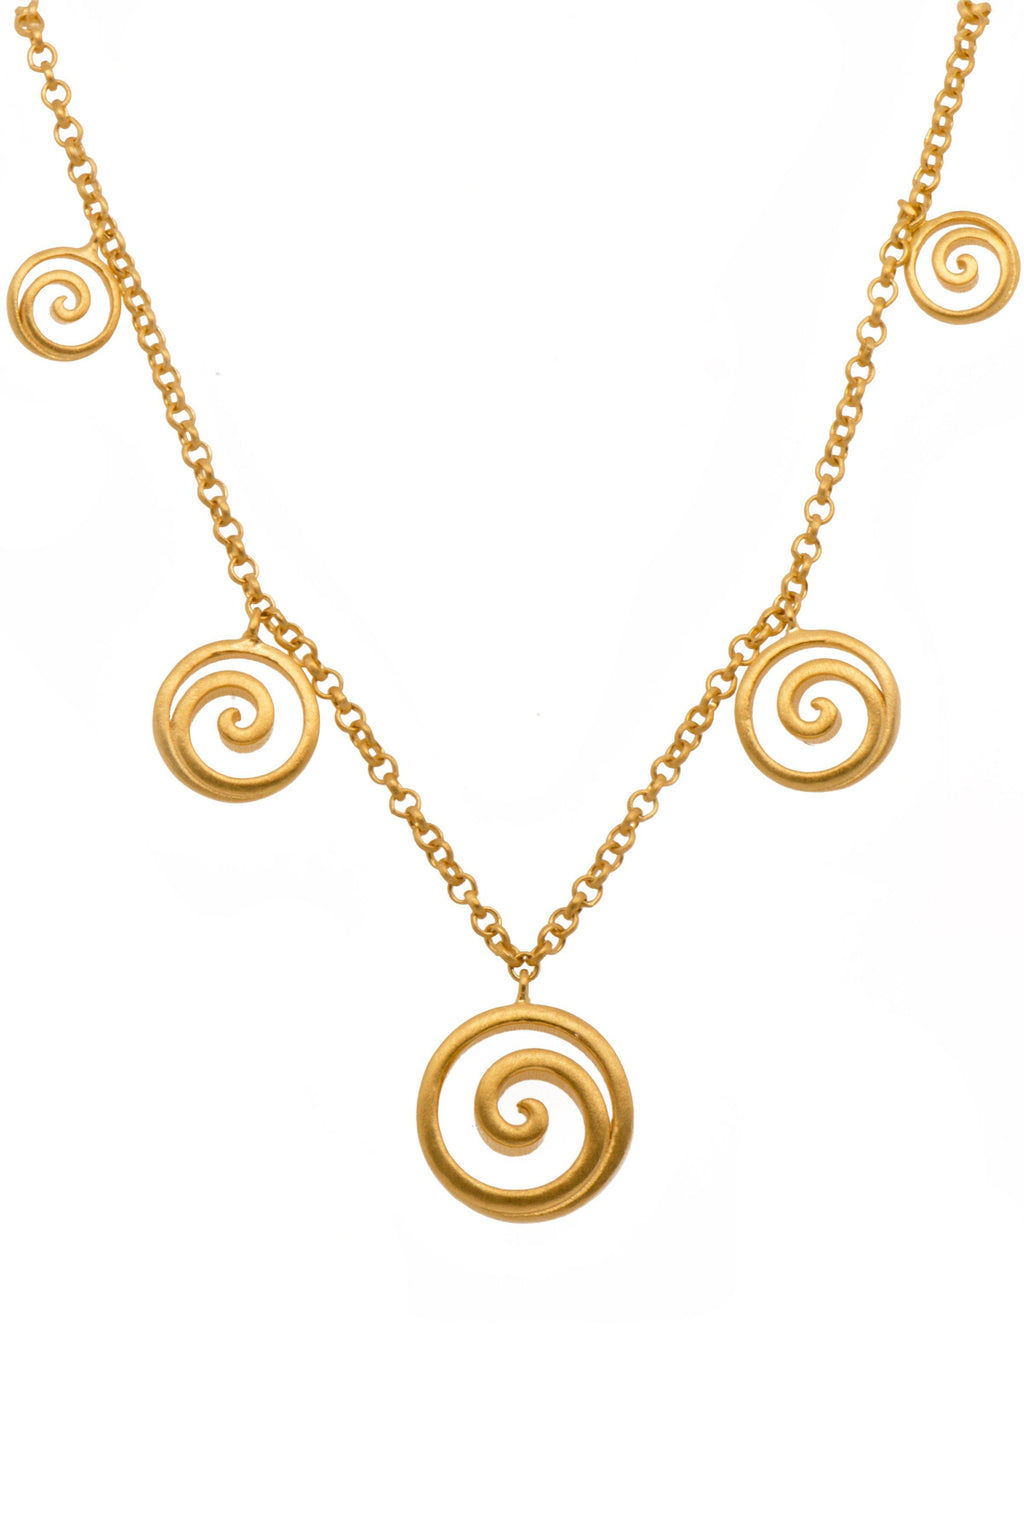 GRN4V NECKLACE- GRATITUDE GRADUATED OPEN SWIRL 24K GOLD VERMIL - Joyla Jewelry